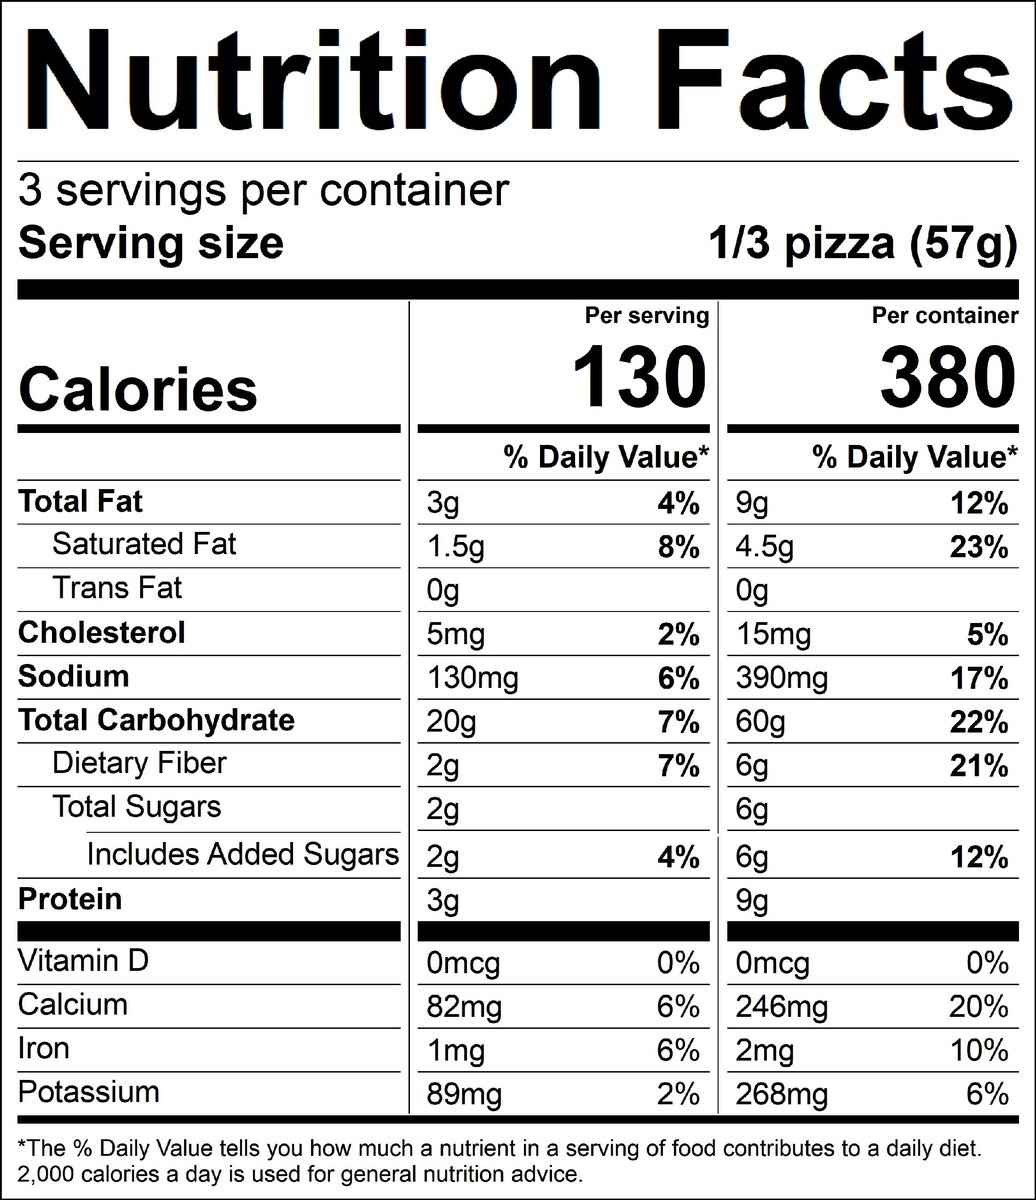 nutrition label; 1 serving 130 cal; 3g fat; 1.5g saturated fat; 0g trans fat; 5mg cholesterol; 130mg sodium; 20g total carbohydrates; 2g dietary fiber; 2g total sugars includes 2g added sugars; 3g protein; 0mcg vitamin d; 82mg calcium; 1mg iron; 89mg potassium